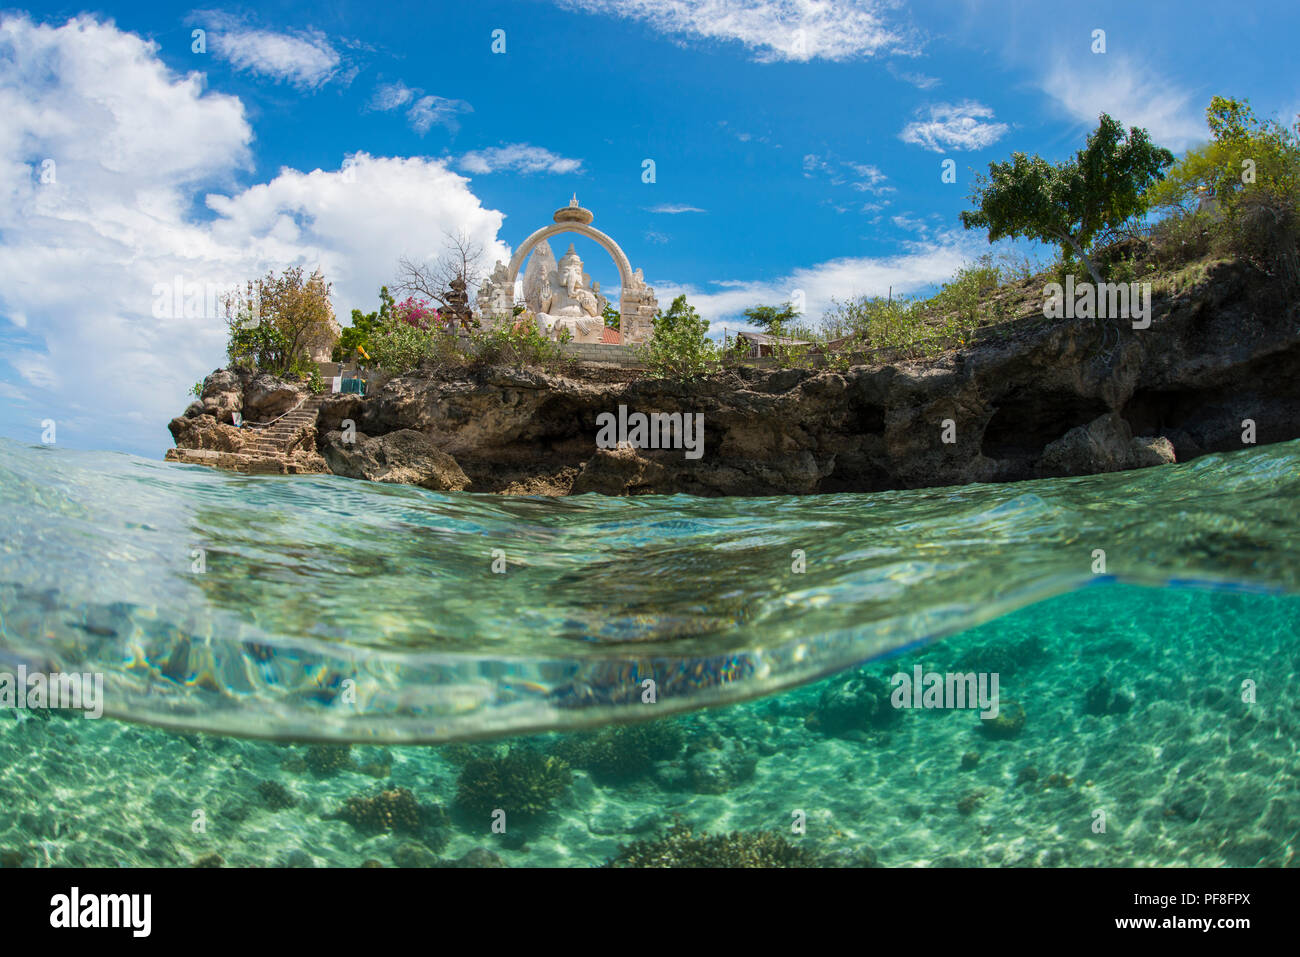 Underwater split-level photo in shallow tropical water of Buddhist temple & Ganesh statue at Menjangan Island, Bali, Indonesia, with blue sky above. - Stock Image